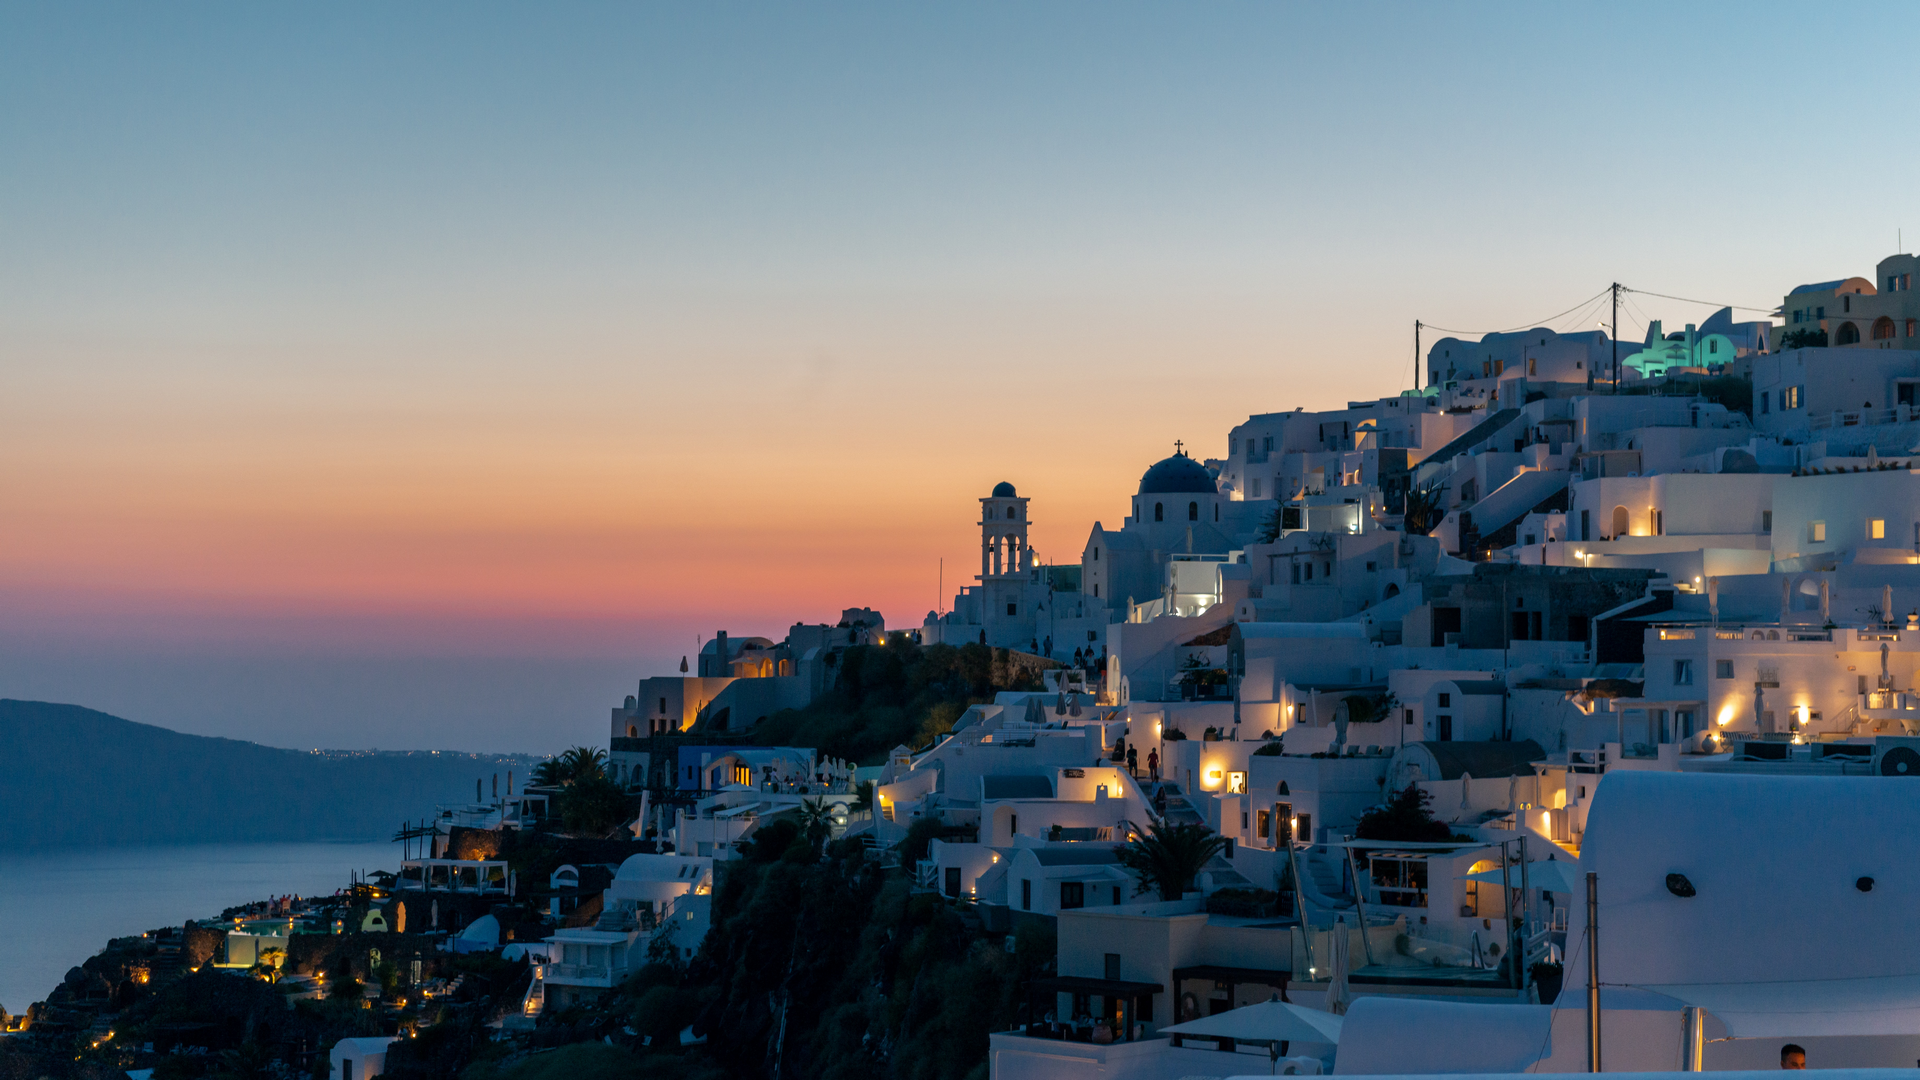 A view in Greece